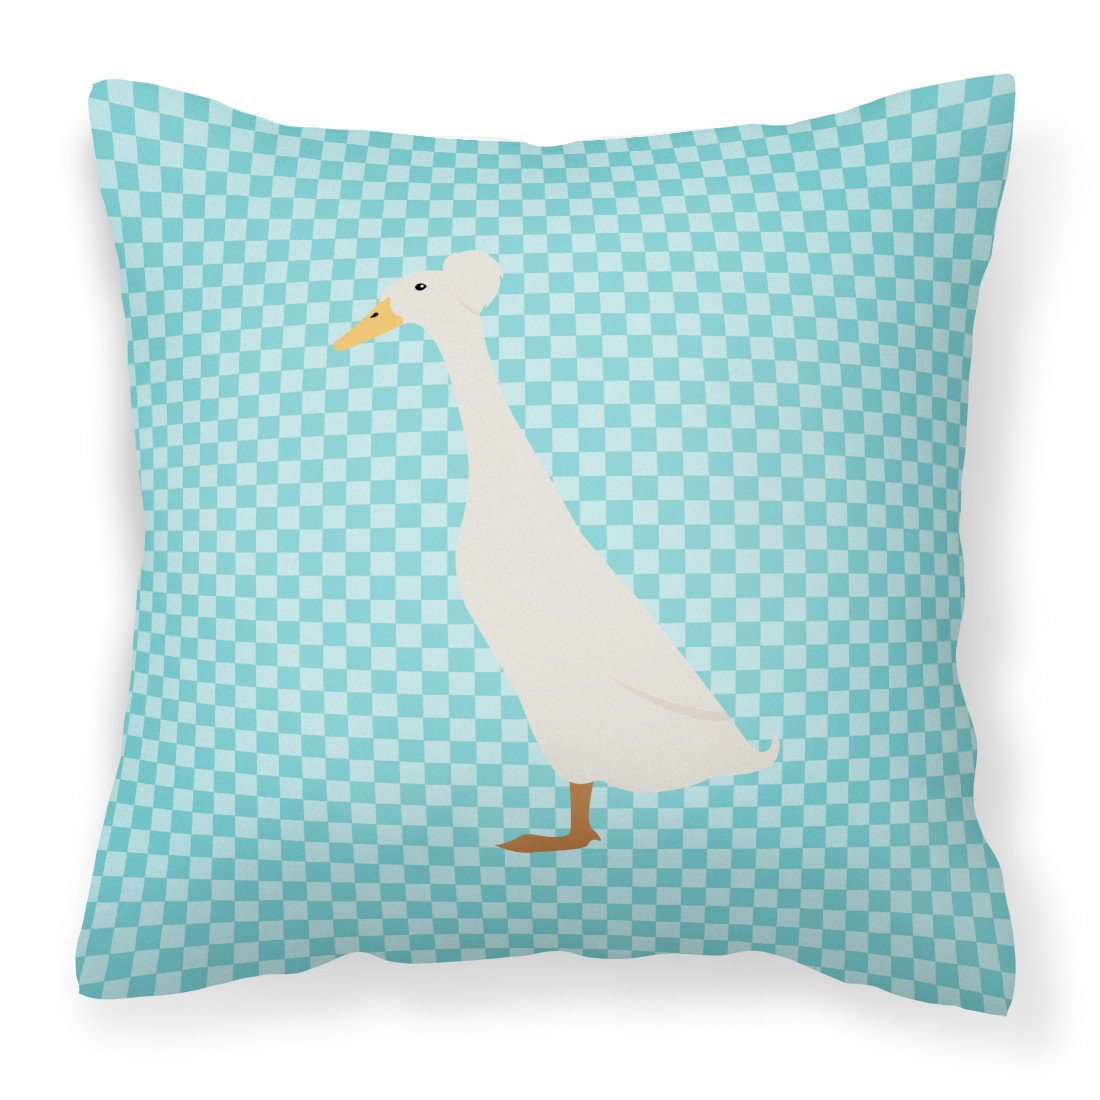 Bali Duck Blue Check Fabric Decorative Pillow BB8033PW1818 by Caroline's Treasures